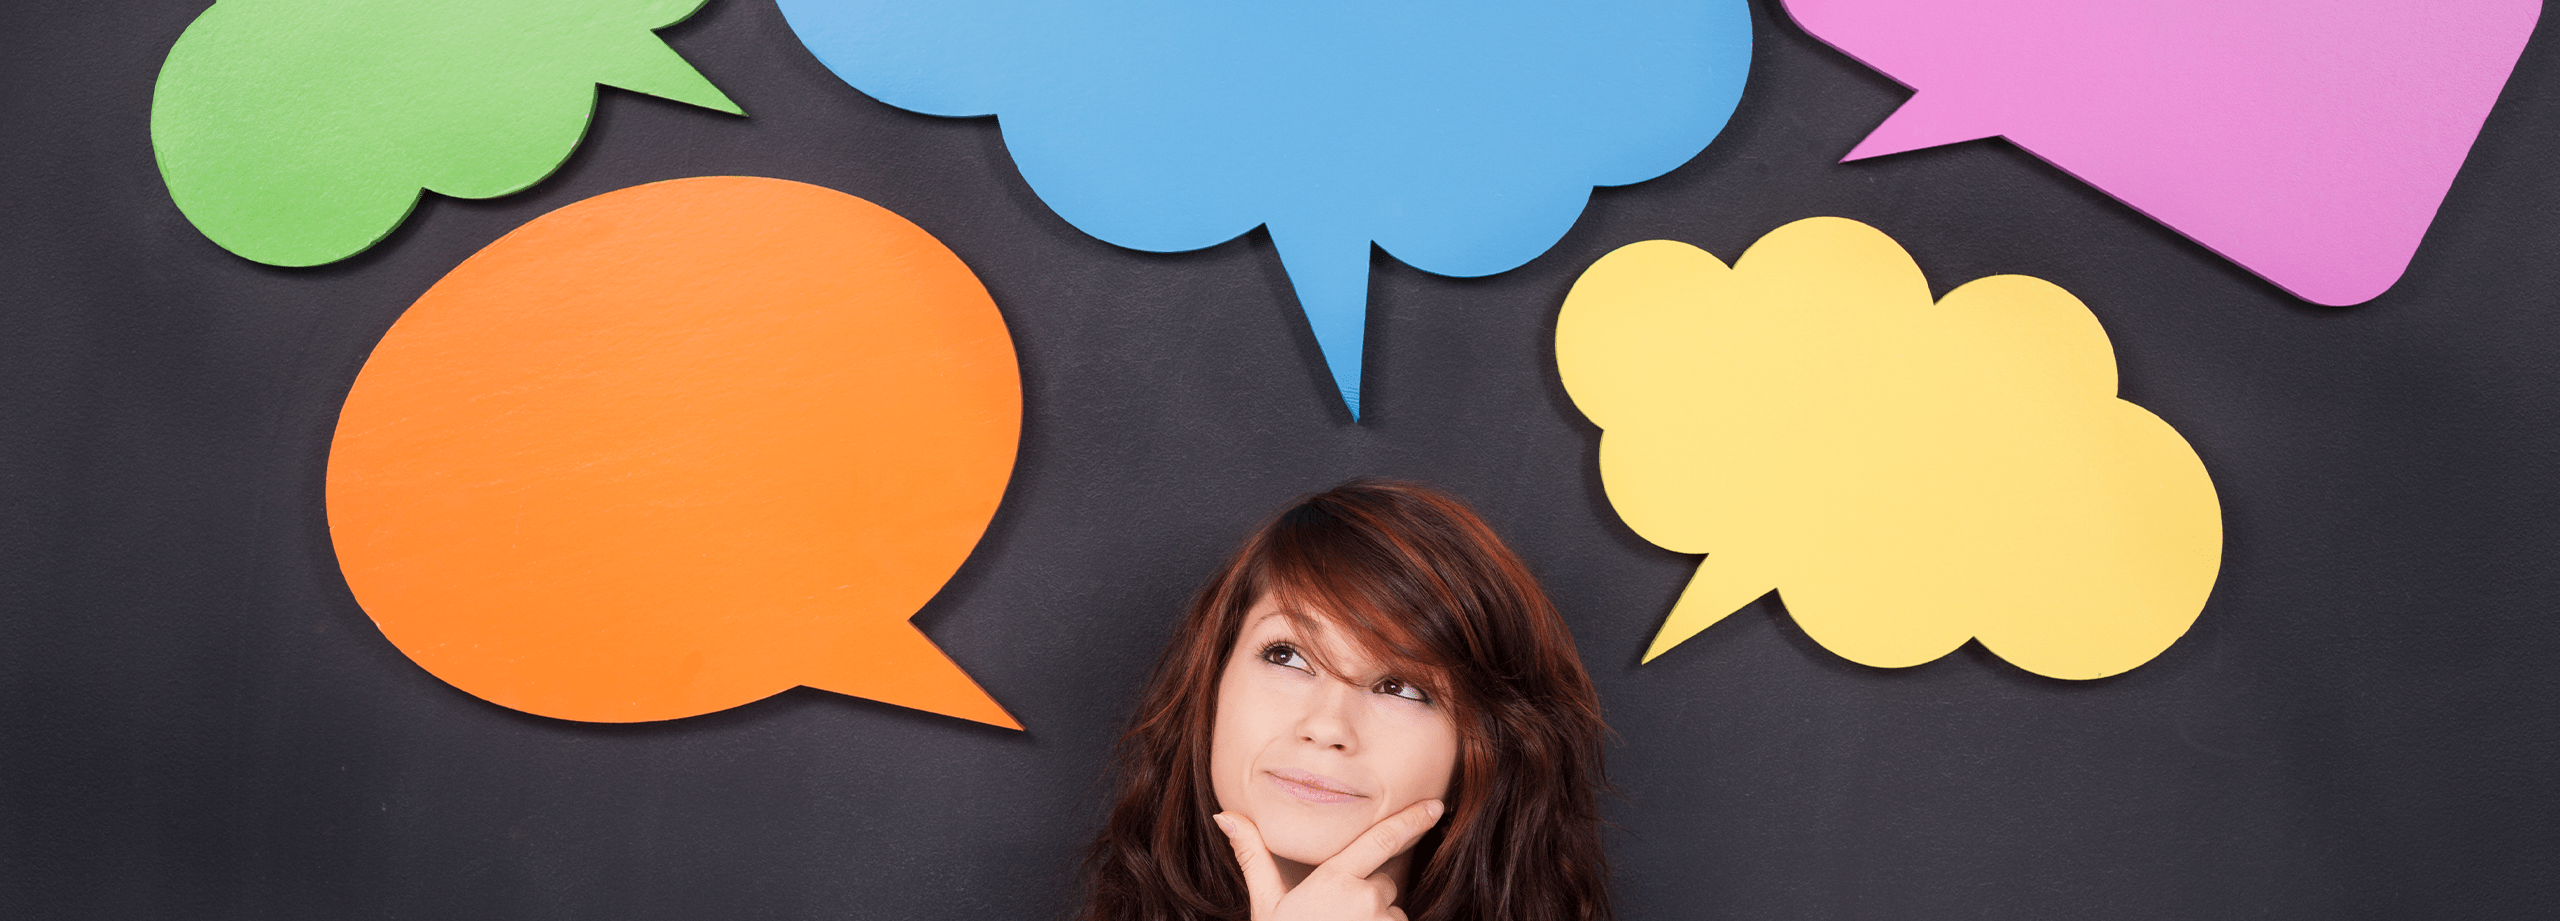 Photo of a young woman with speech bubbles above her head